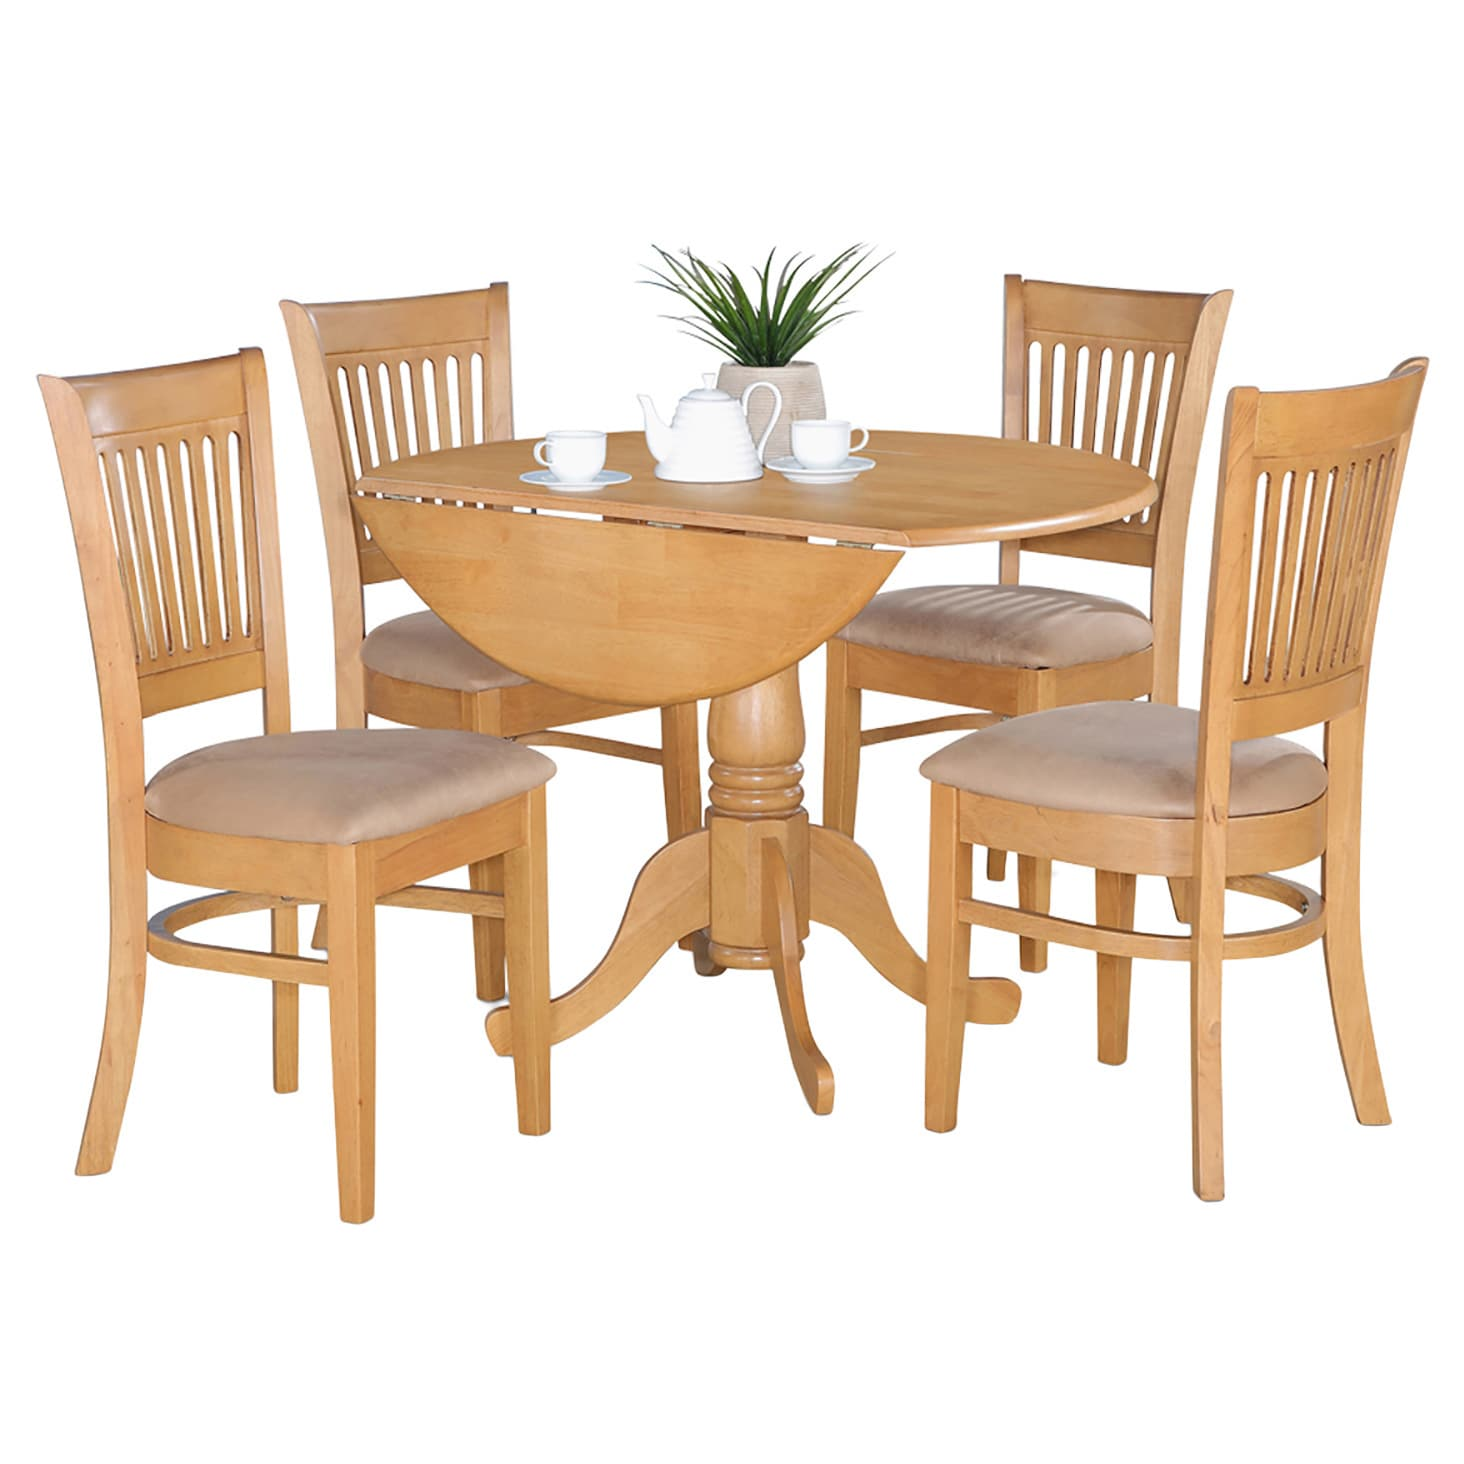 5pc Round Pedestal Drop Leaf Kitchen Table 4 Chairs: #1Cheap Oak Drop Leaf Table And 4 Dinette